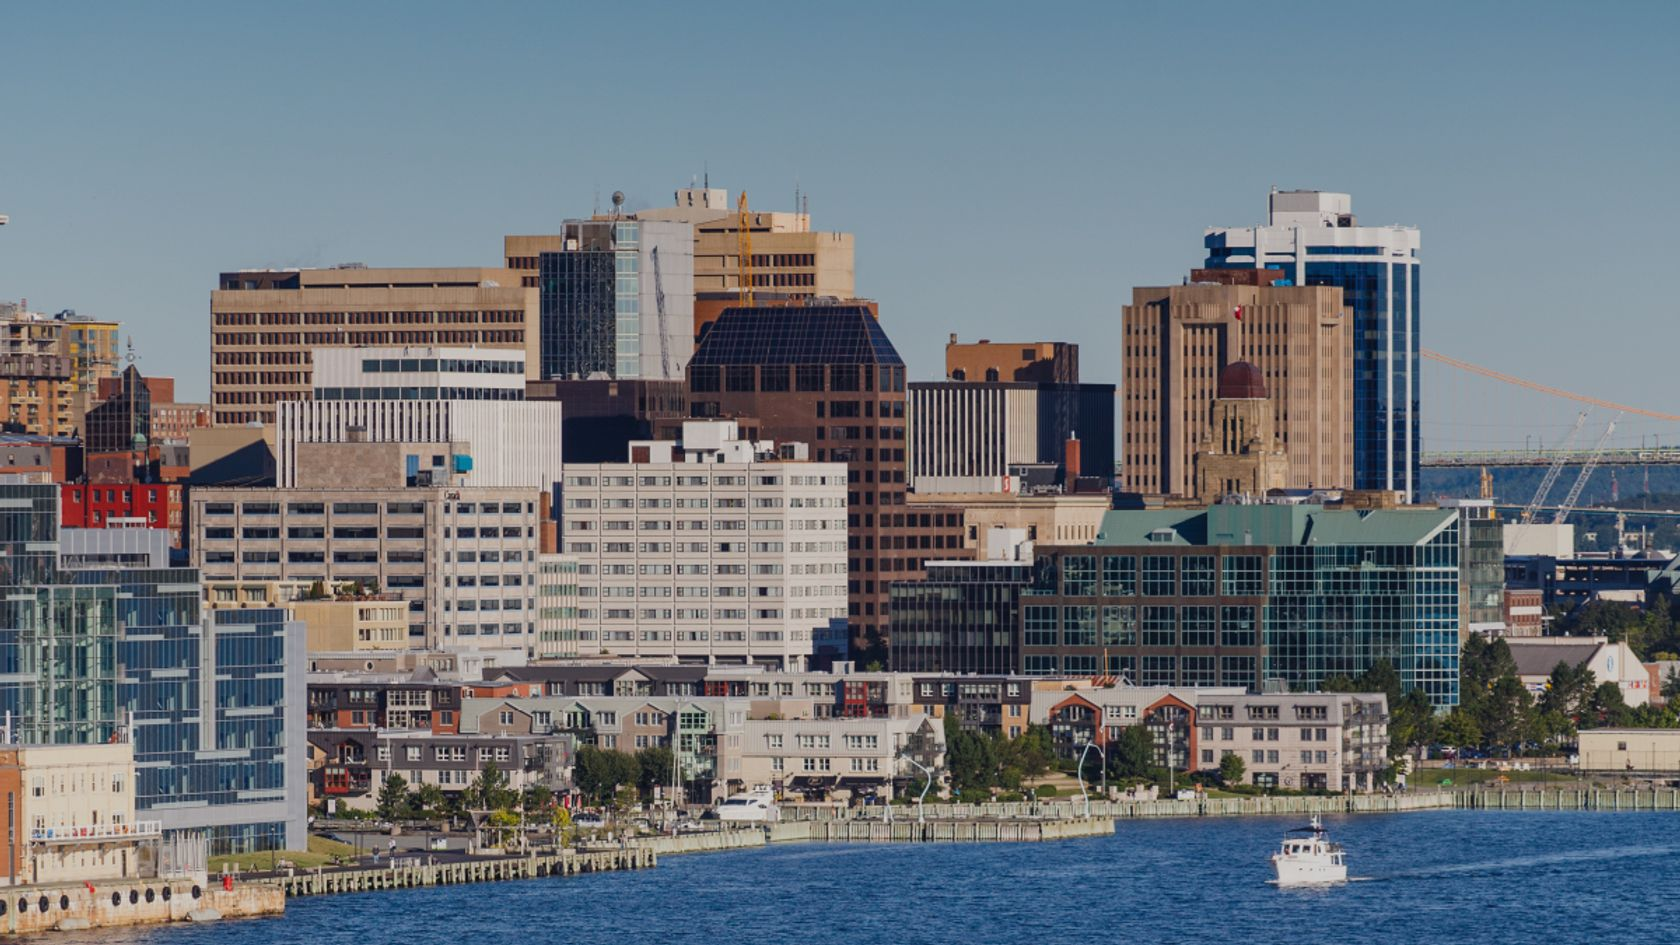 Looking for a slower pace of life, great job opportunities, and all the comforts of city life? Find out how to immigrate to Nova Scotia in 2021.